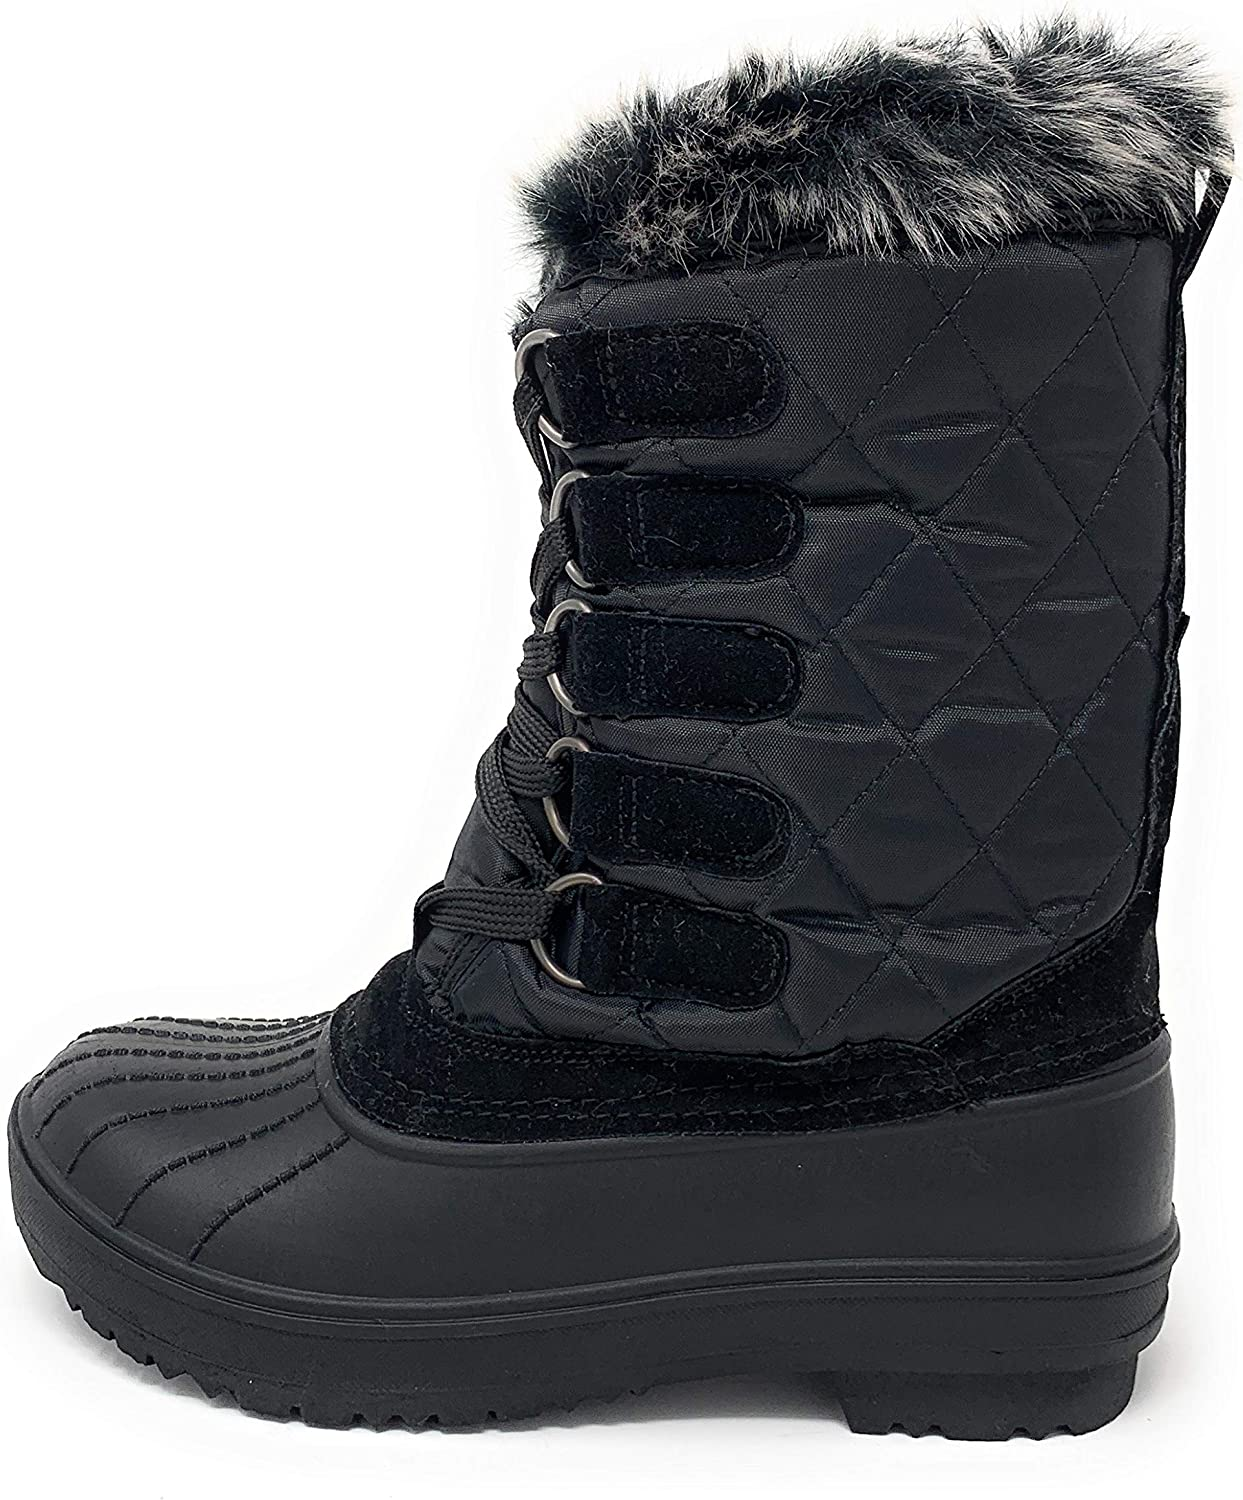 Wild Diva Womens Round Toe Faux Fur Lined Lace Up Mid-Calf Duck